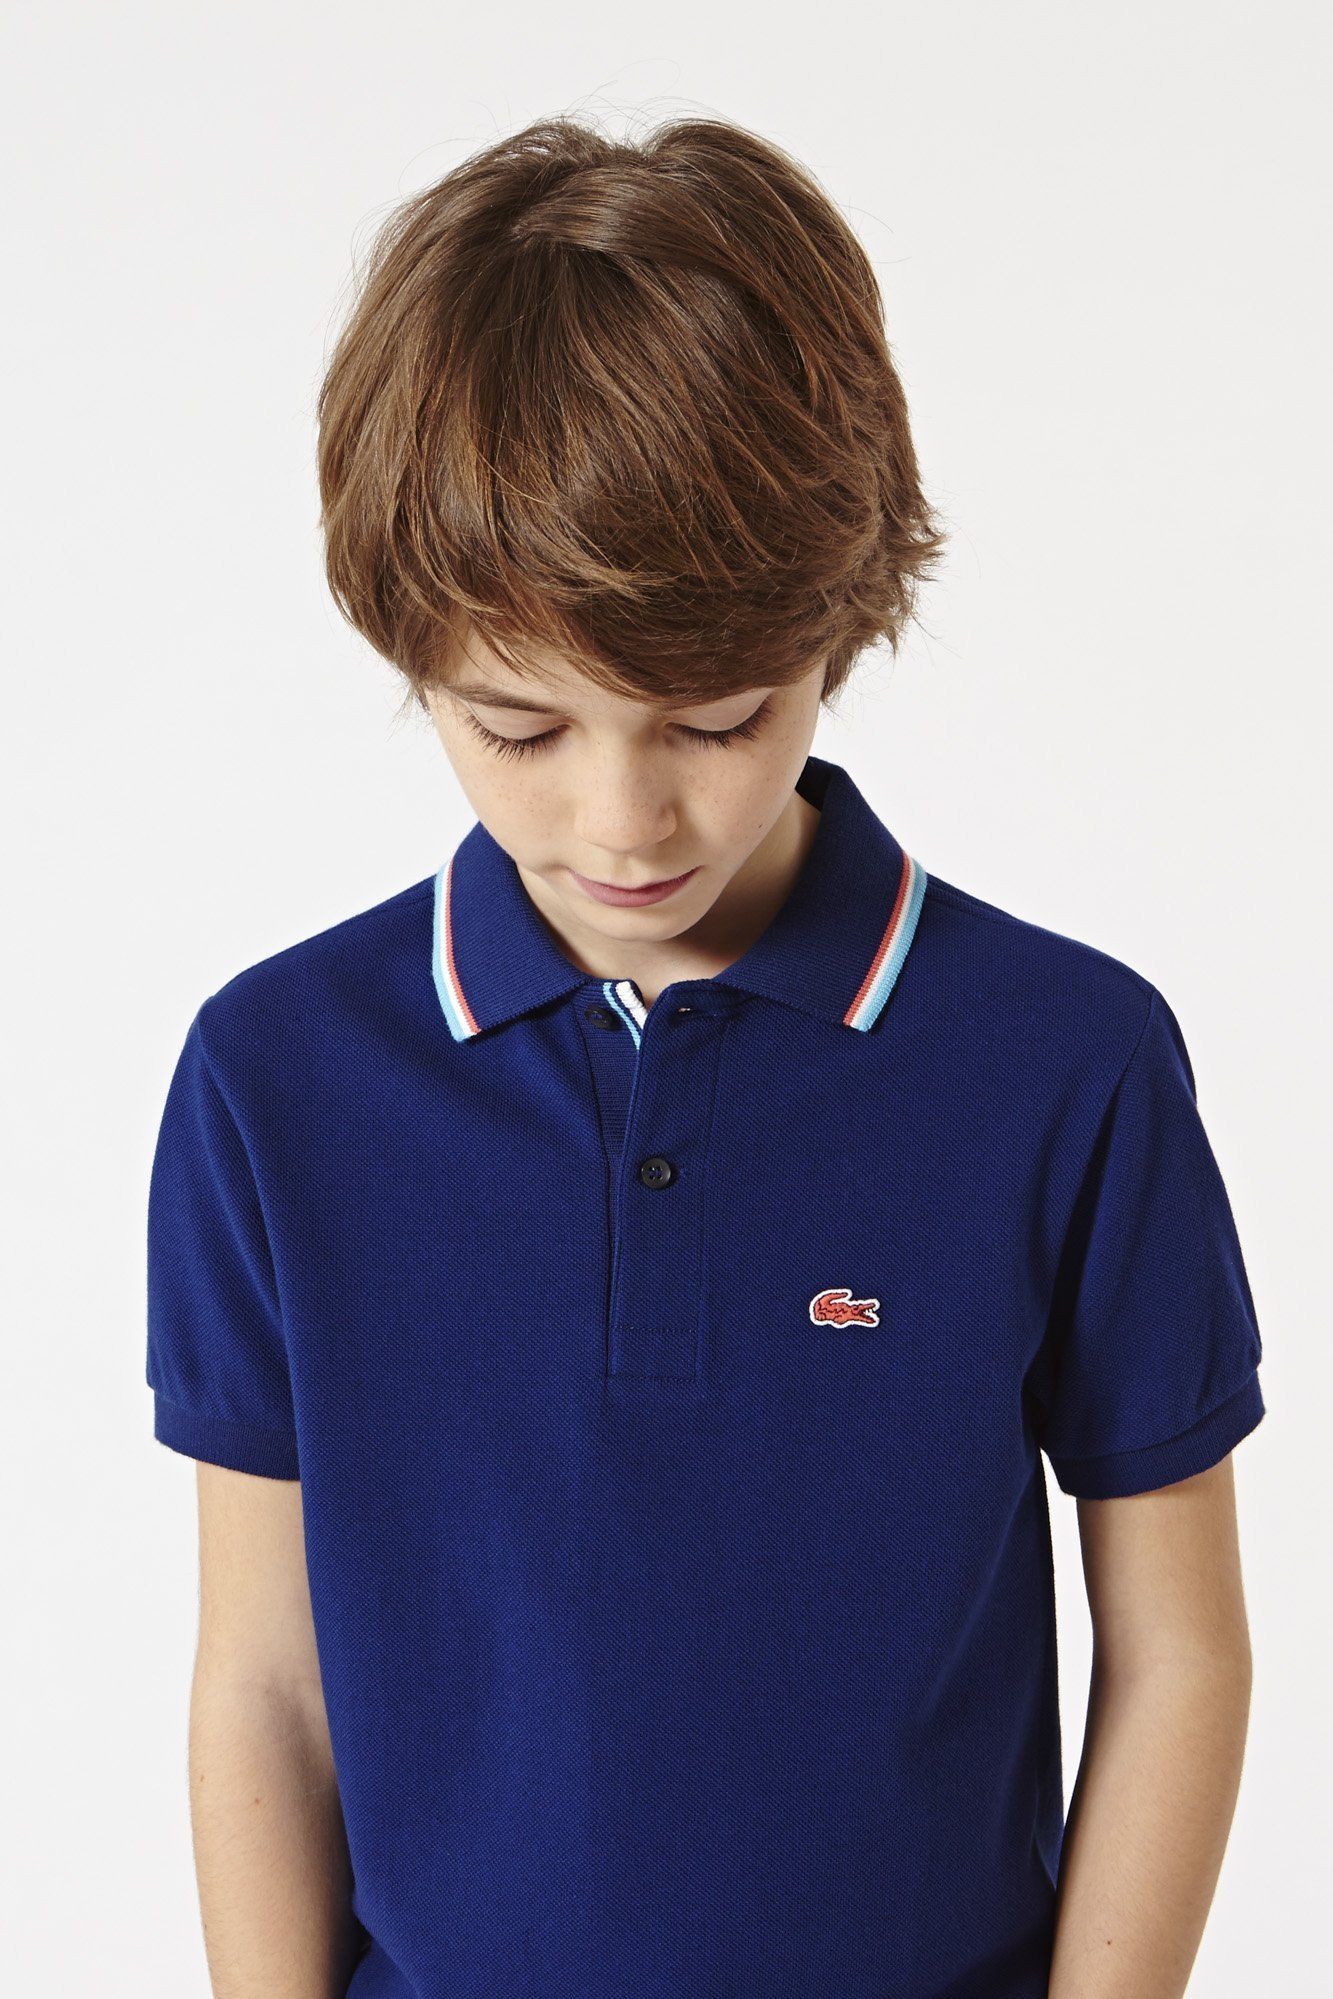 53d11fae7 Lacoste Boy s Short Sleeve Tri-color Tipped Collar Pique  Polo ...